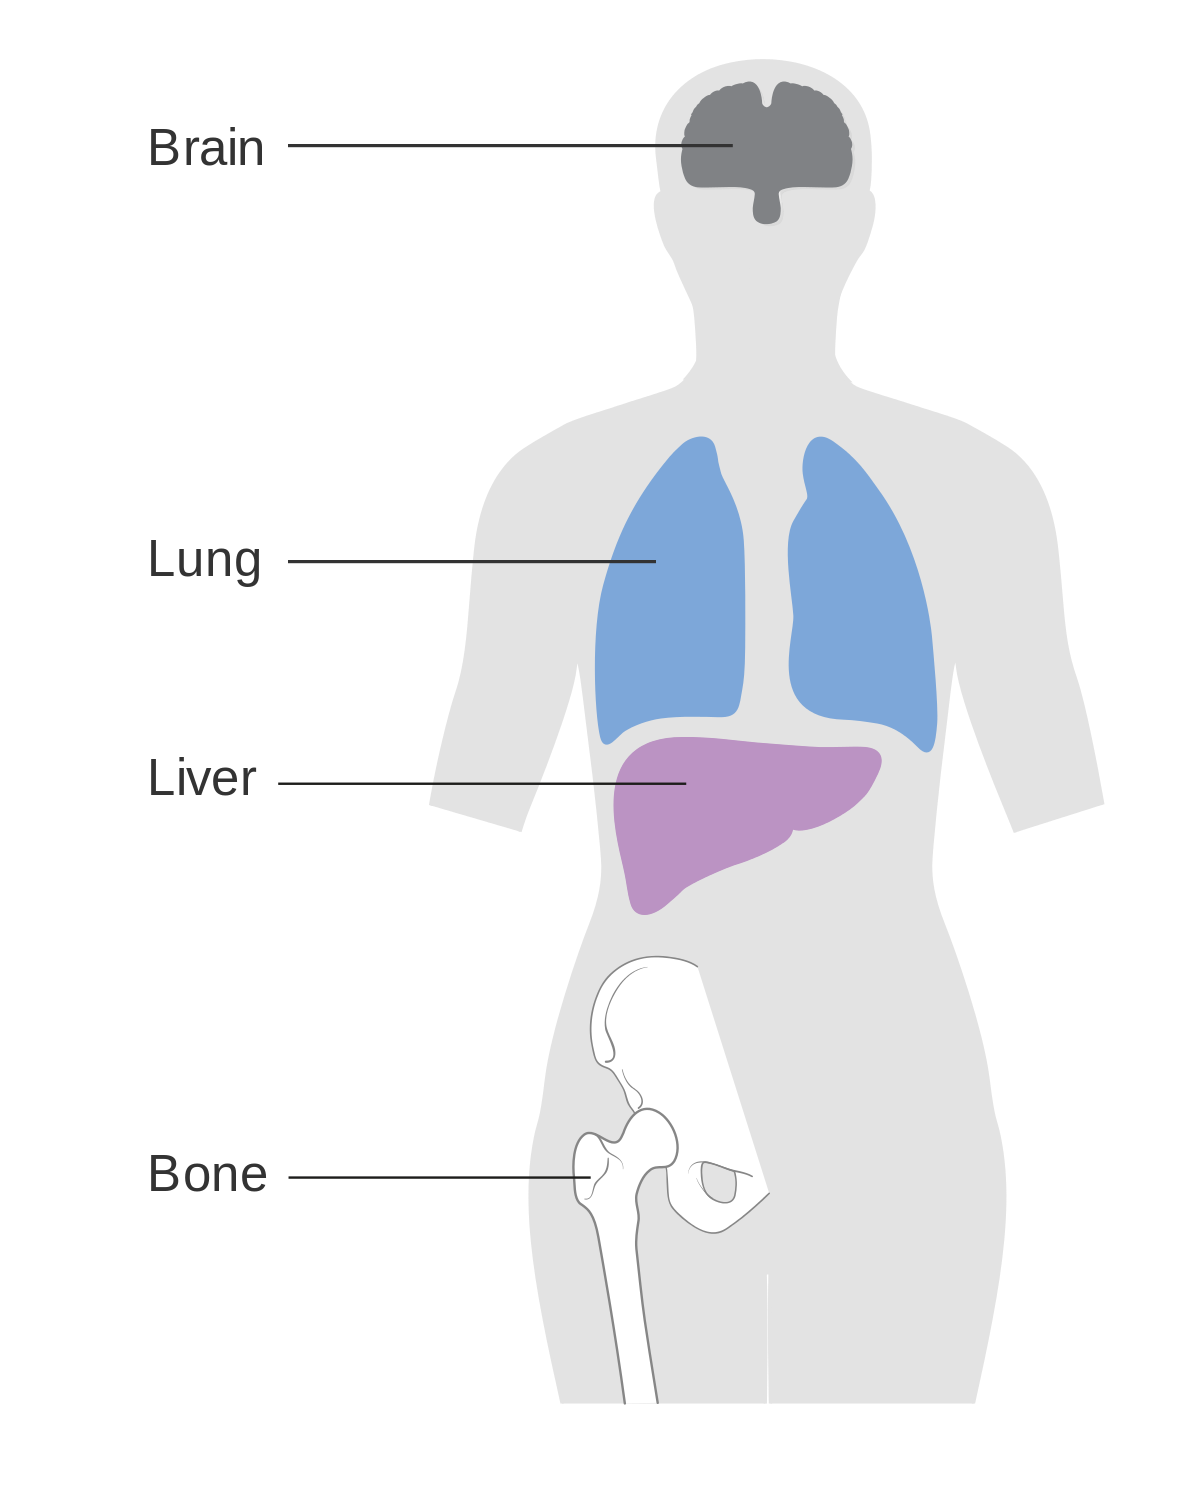 metastatic cancer from carcinoma